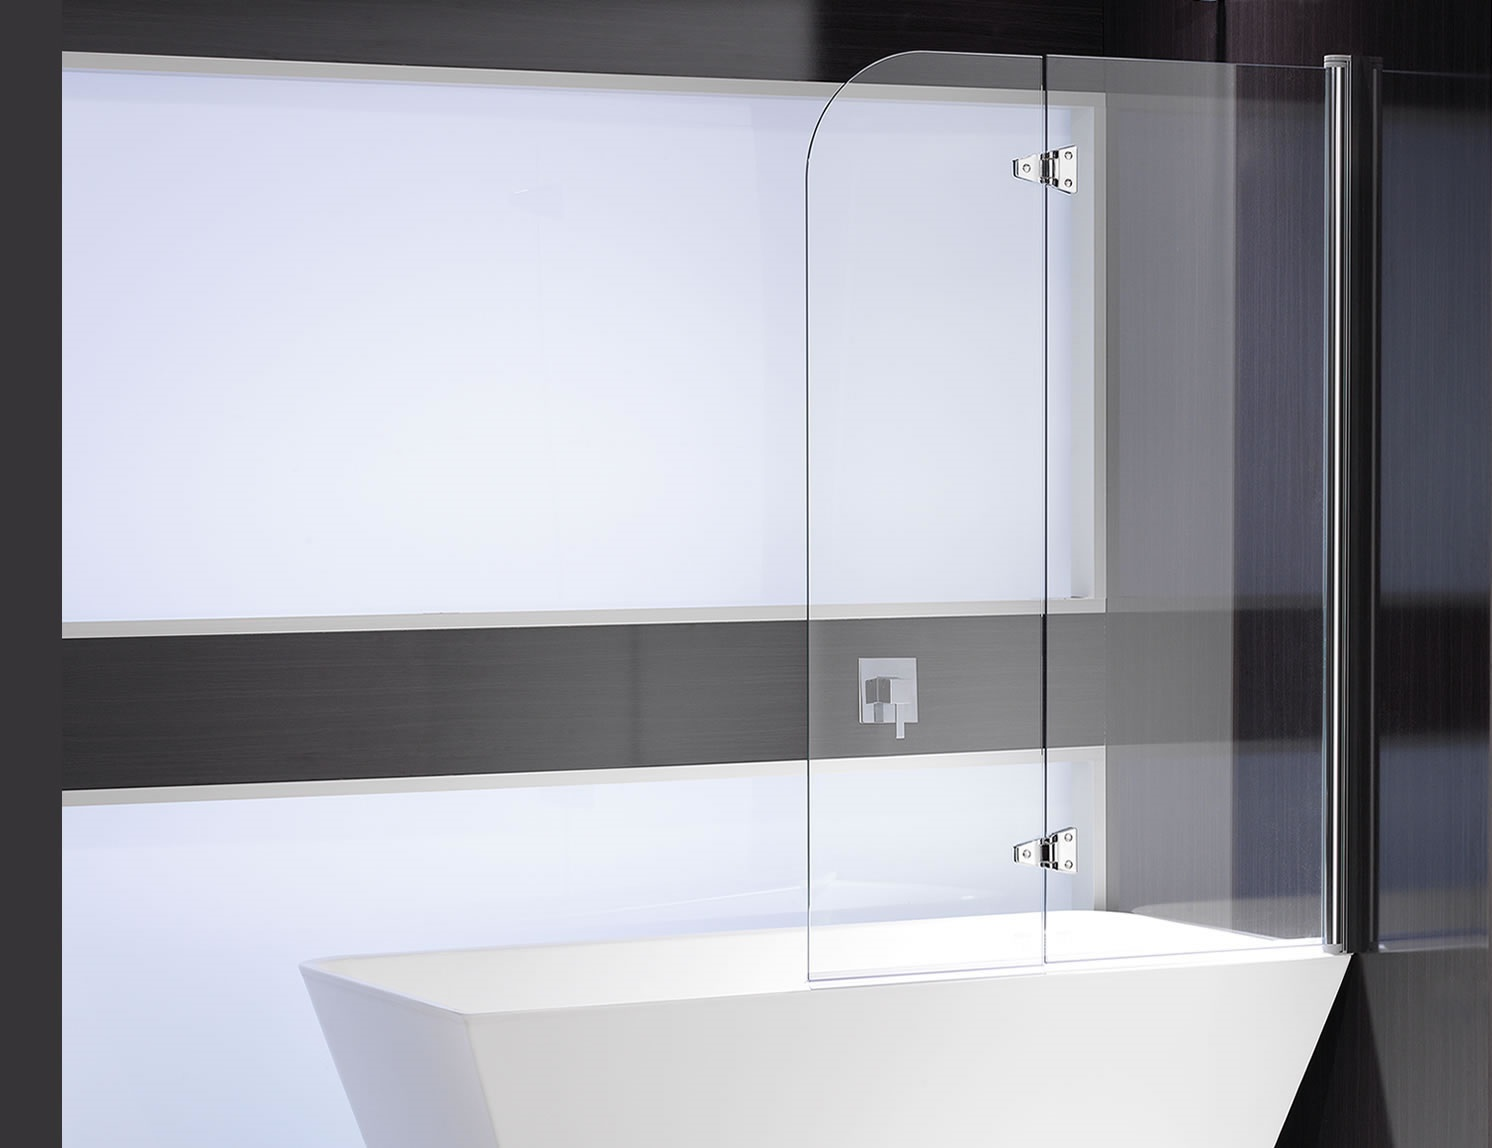 BATHSCREEN CURVED DOUBLE PANEL